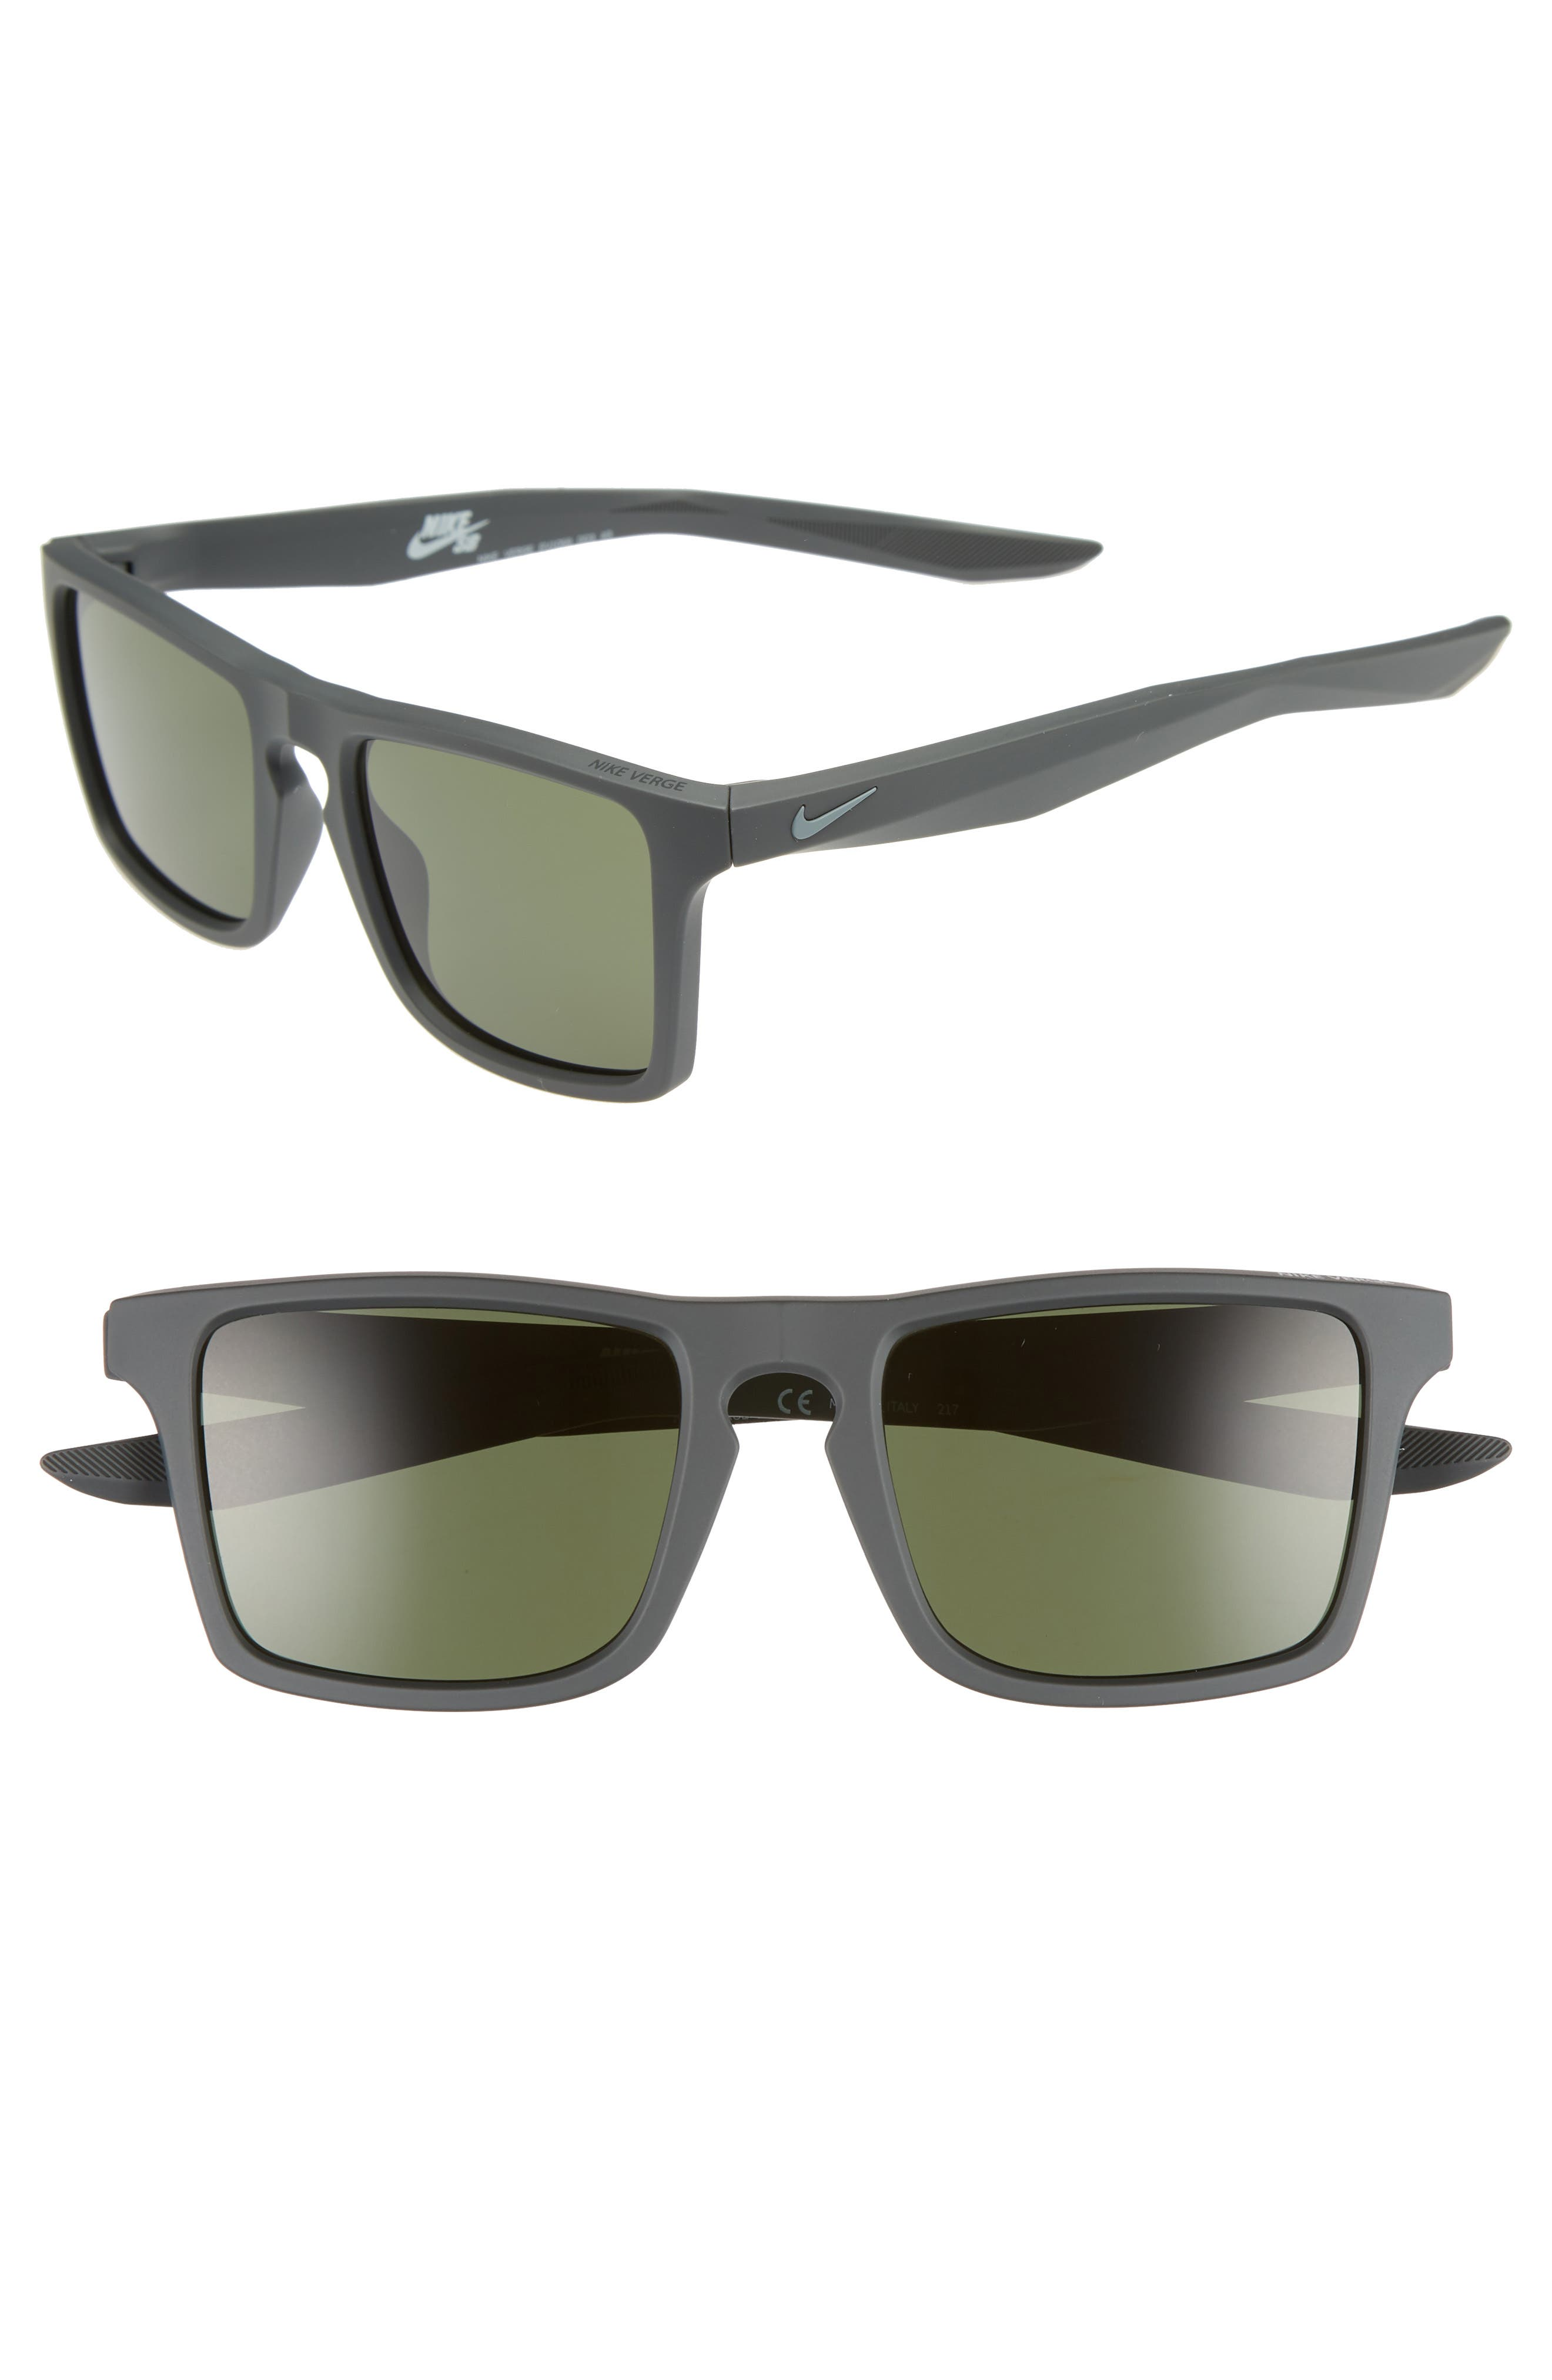 Nike Verge 52Mm Sunglasses - Anthracite/ Cool Grey/ Green